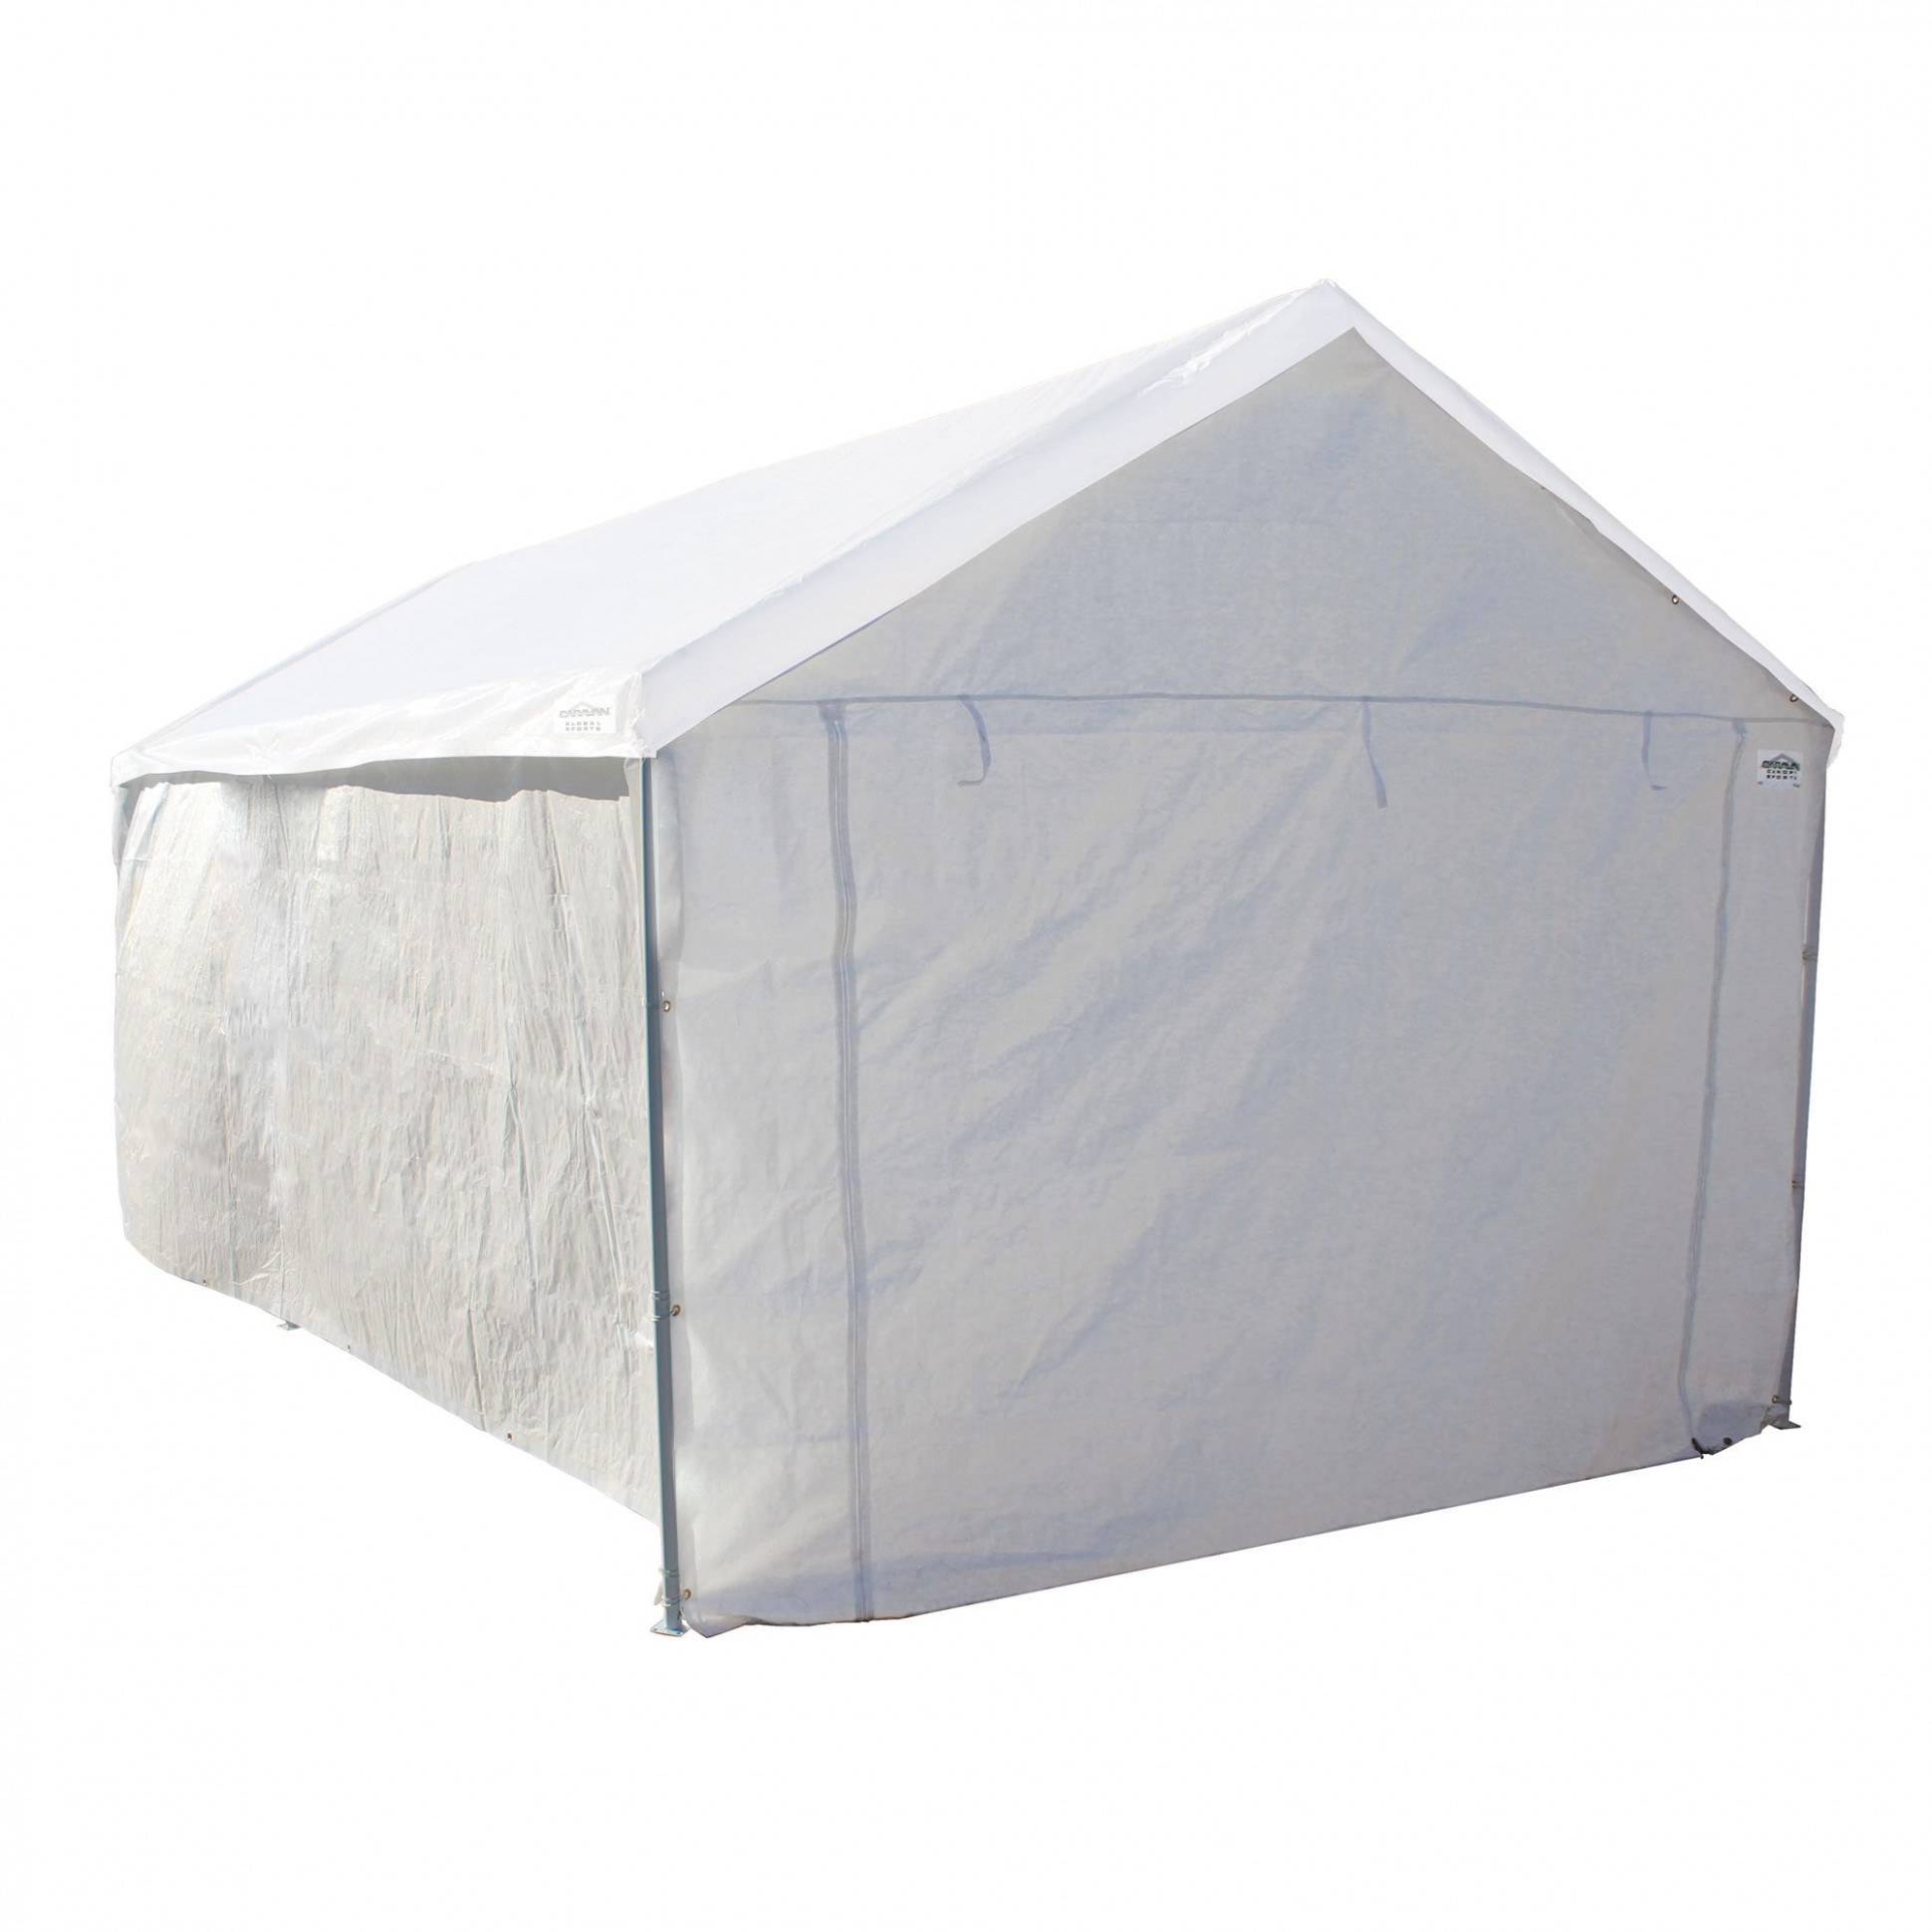 Caravan Canopy Sports 11'x11' Domain Carport Garage Sidewall/Enclosure Kit (Frame And Top Not Included) Enclosing A Carport To Make A Garage